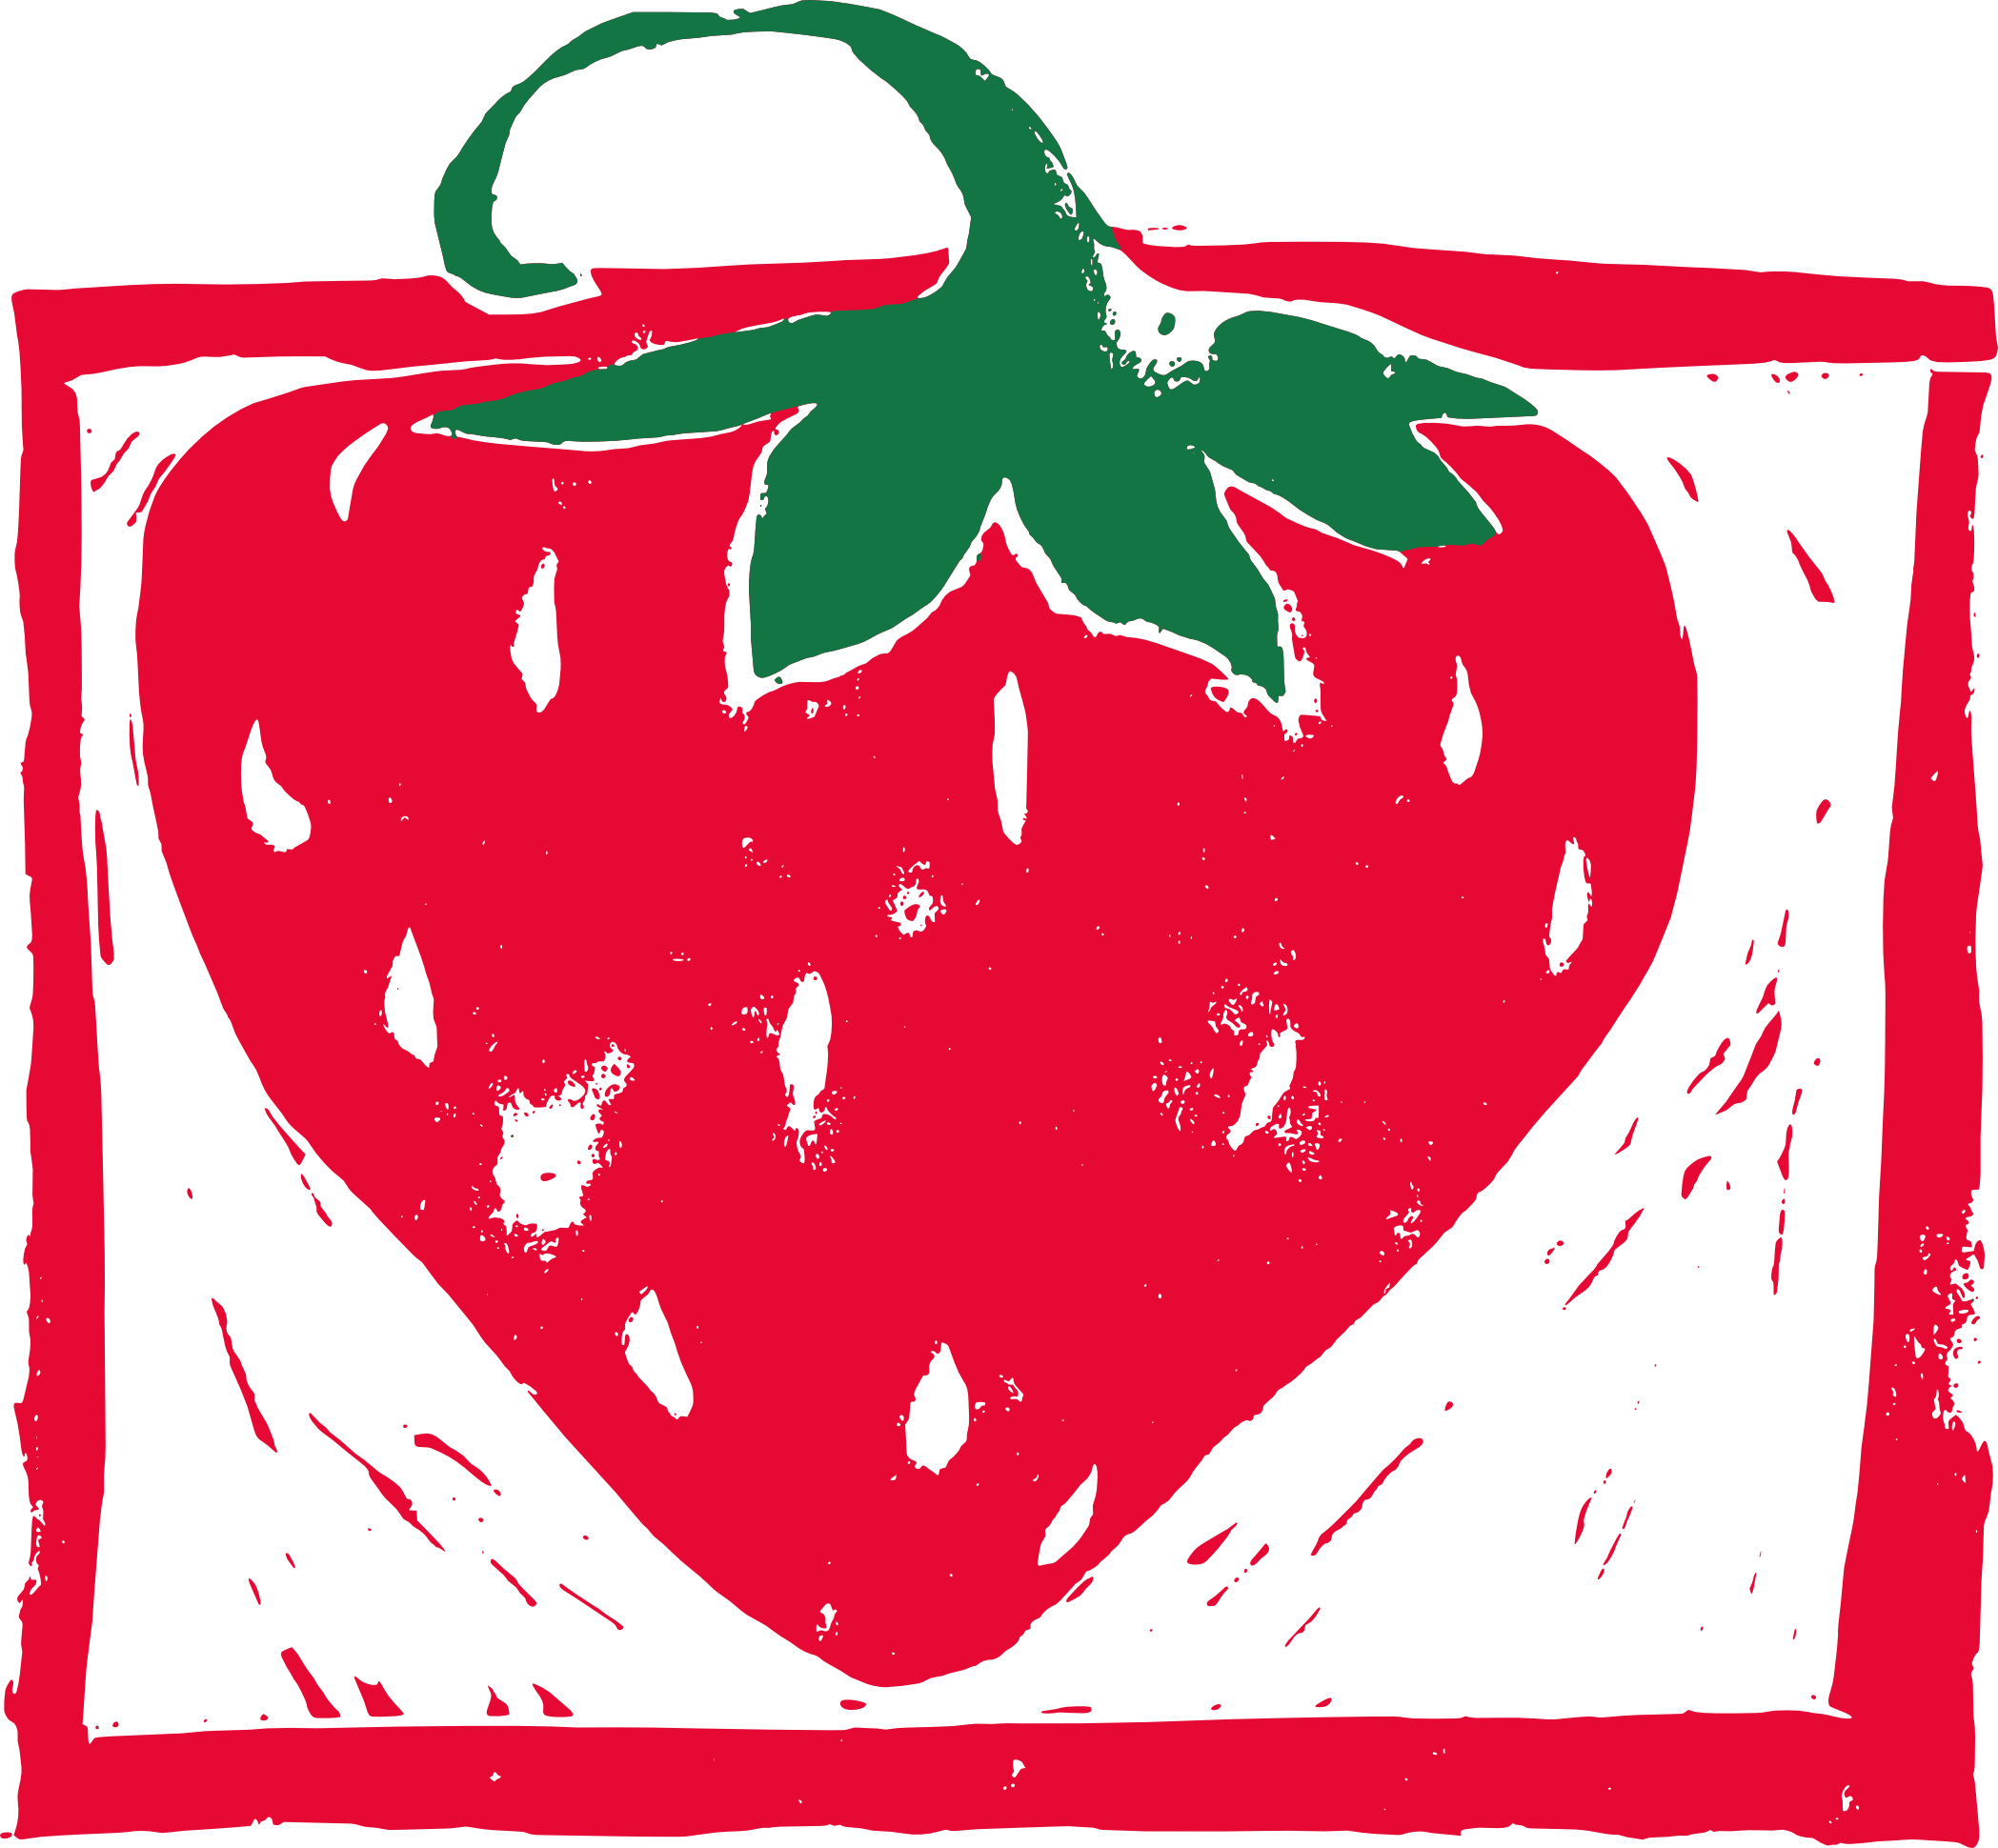 Festival clipart sports festival. Free strawberry cliparts download